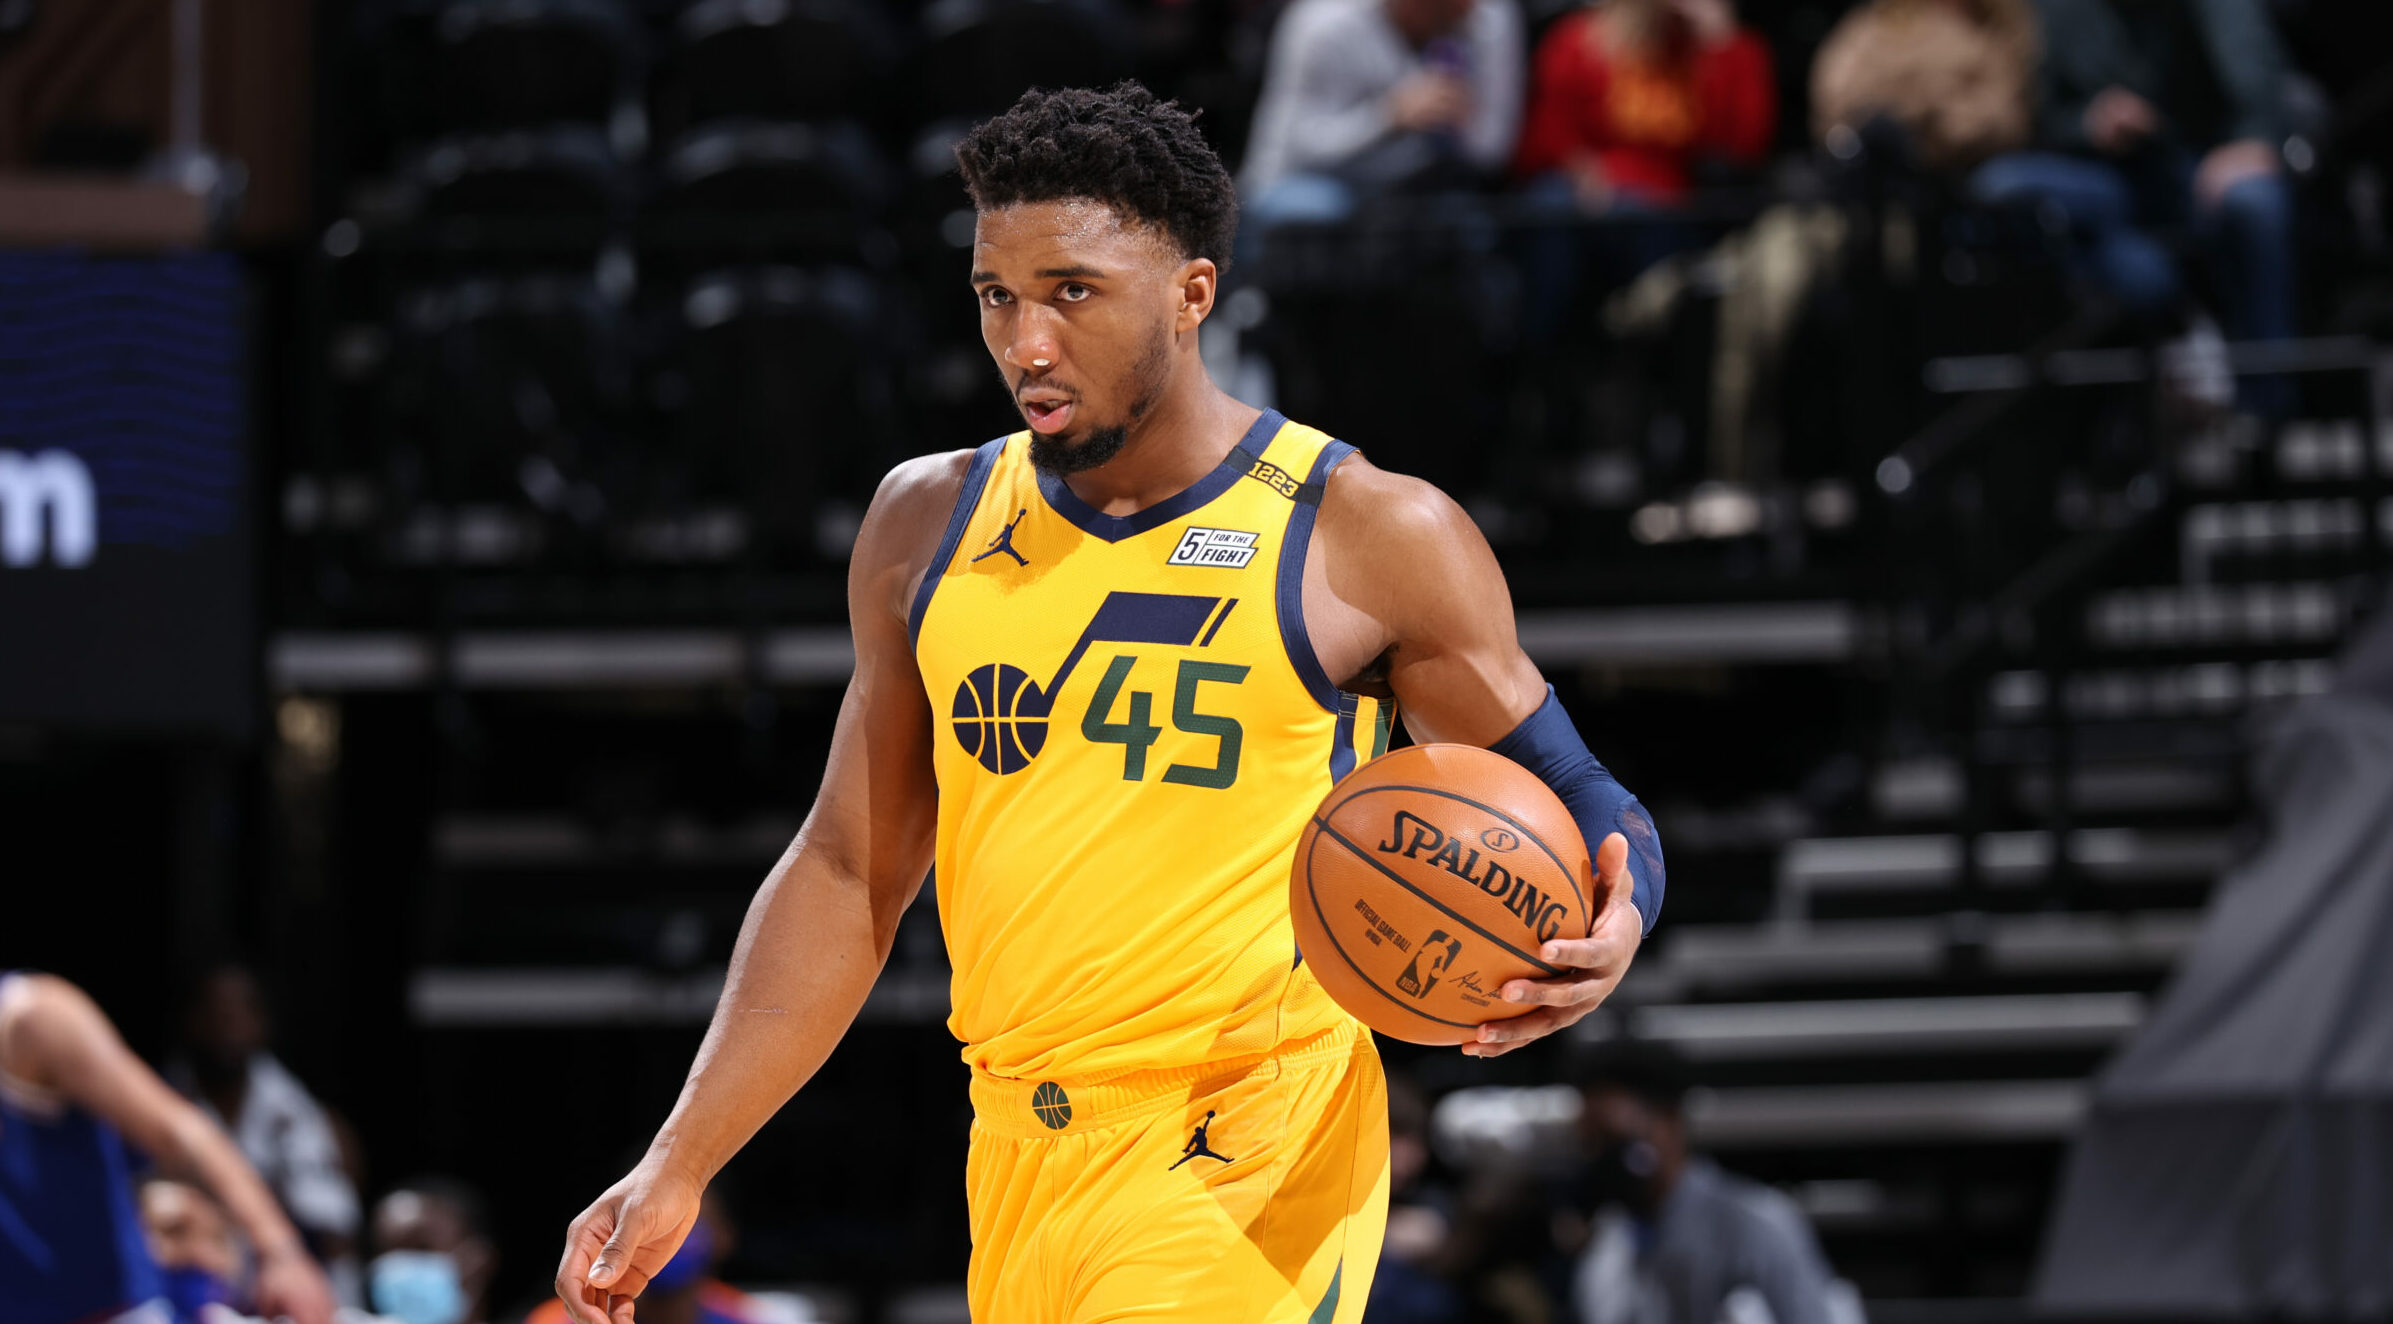 Donovan Mitchell enters concussion protocol, ruled out vs. Mavs